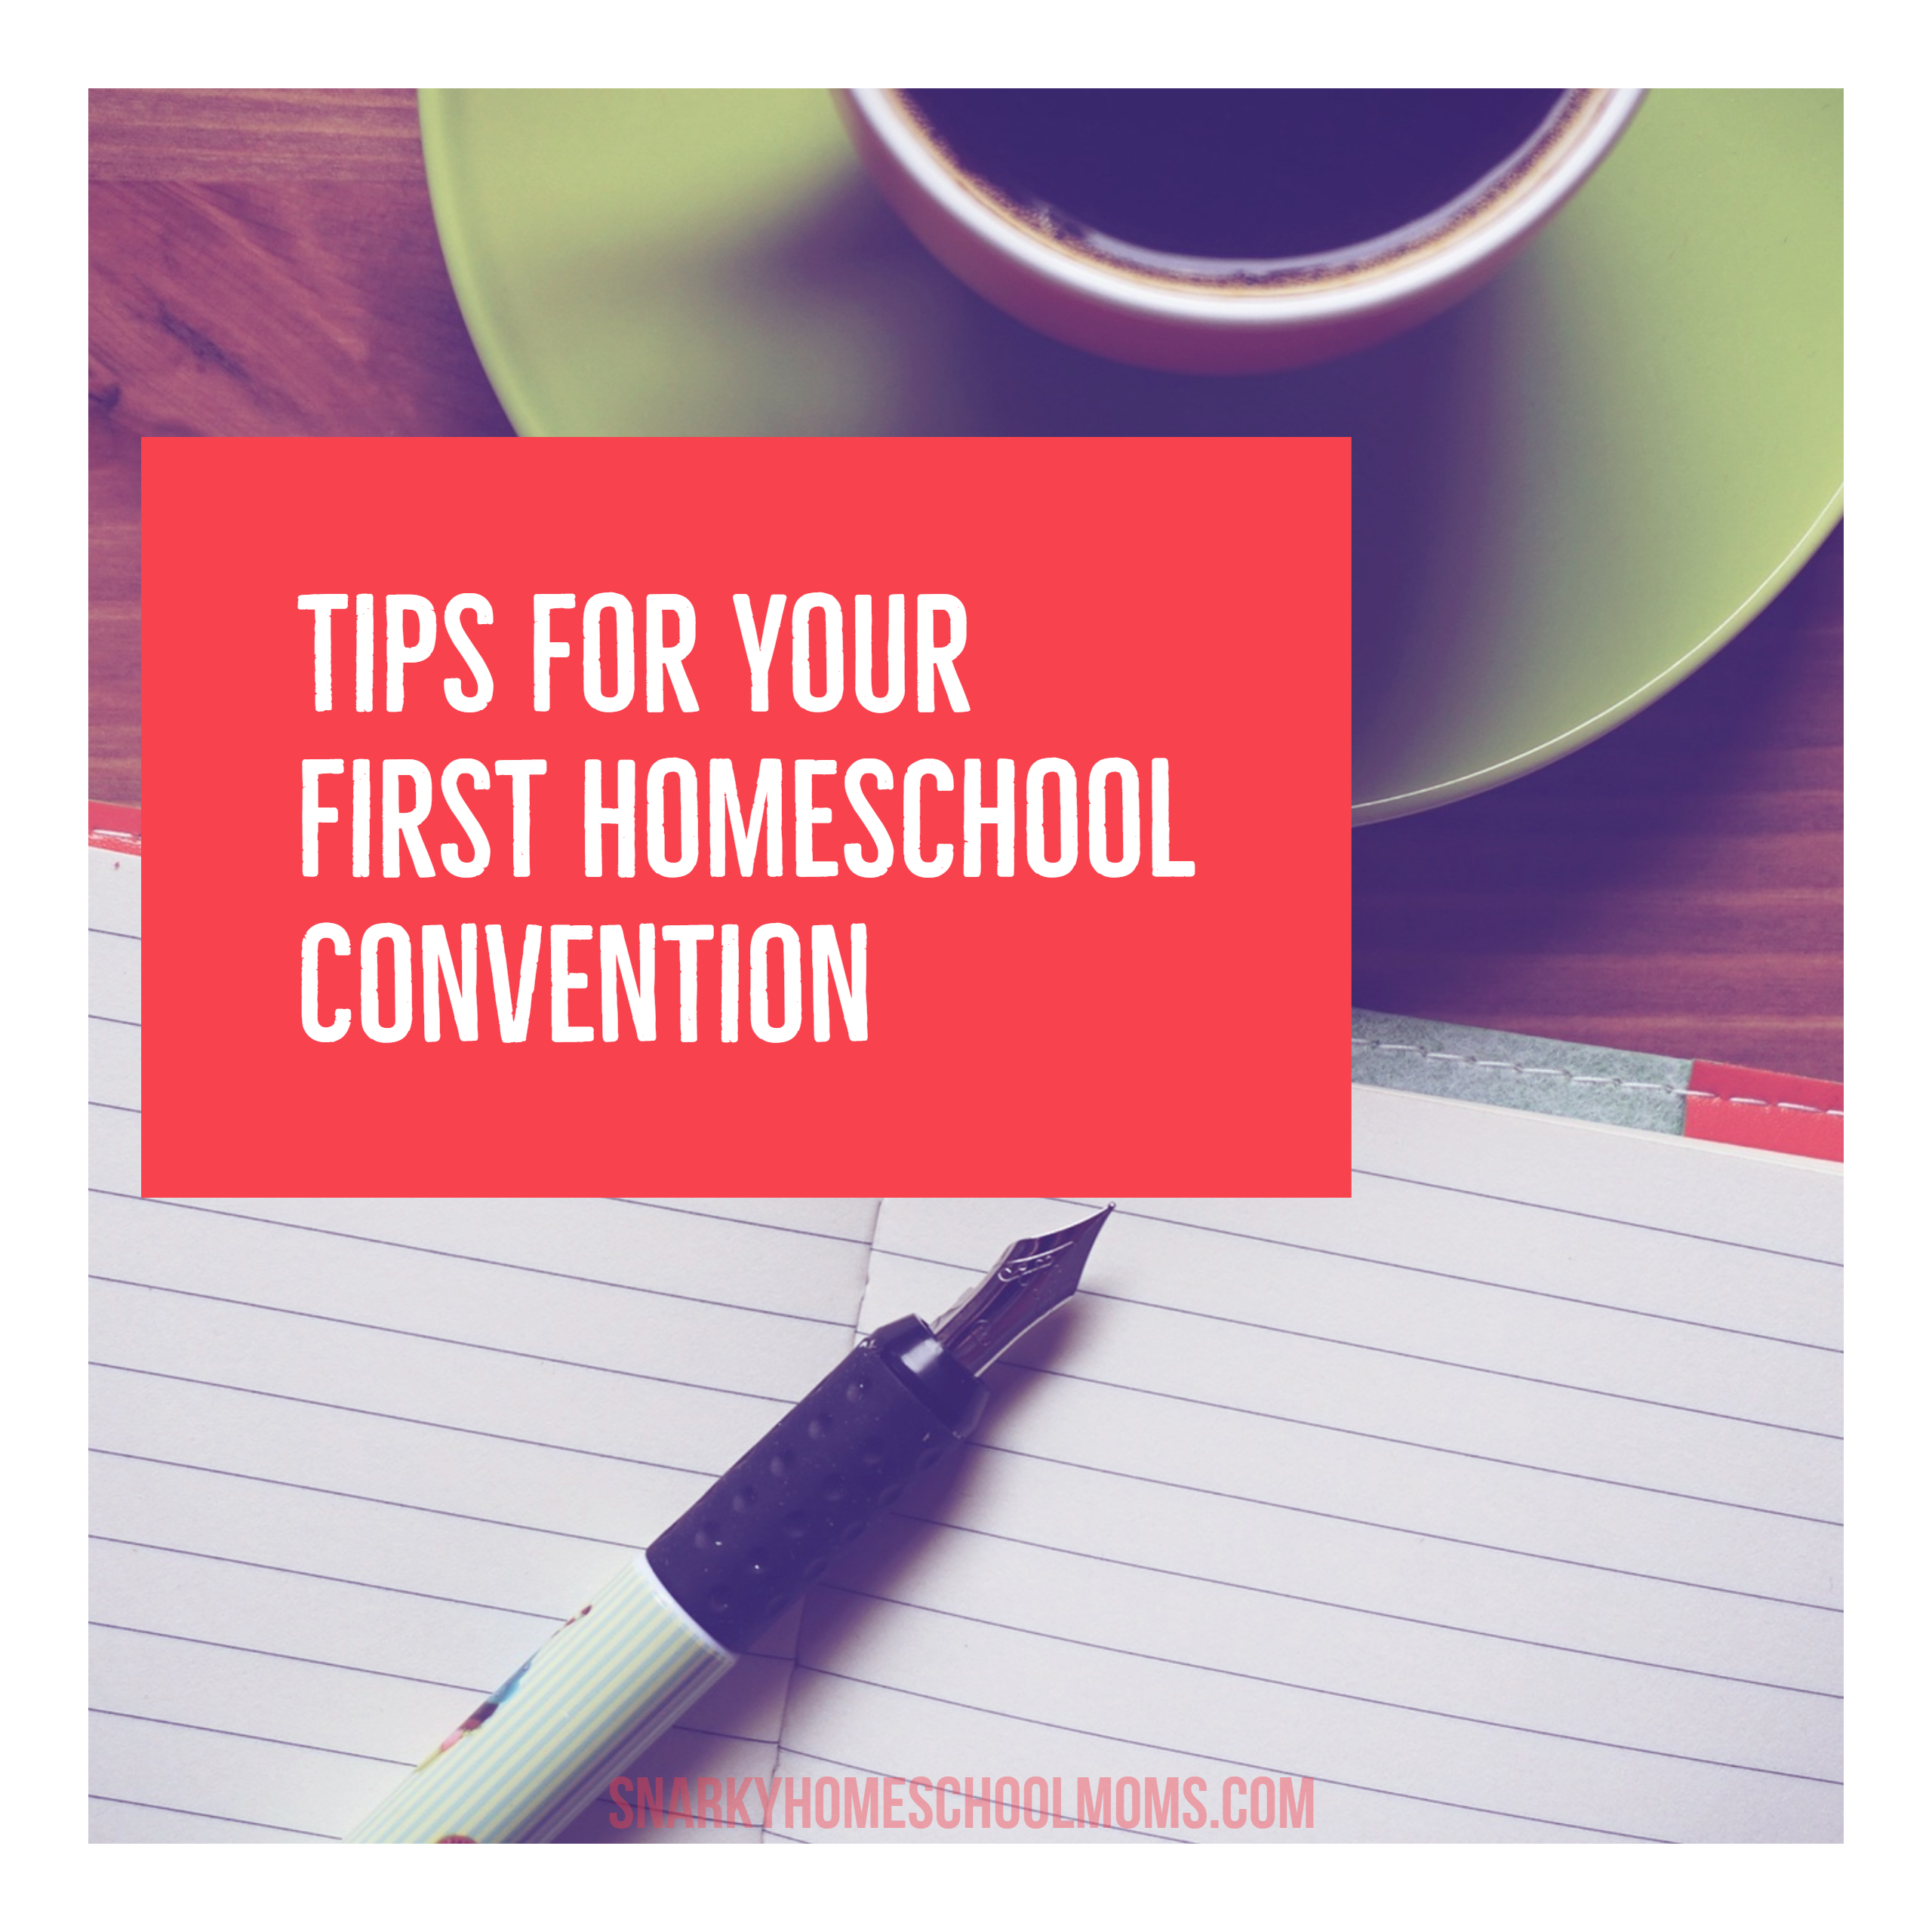 Episode 16 – Tips For Your First Homeschool Convention